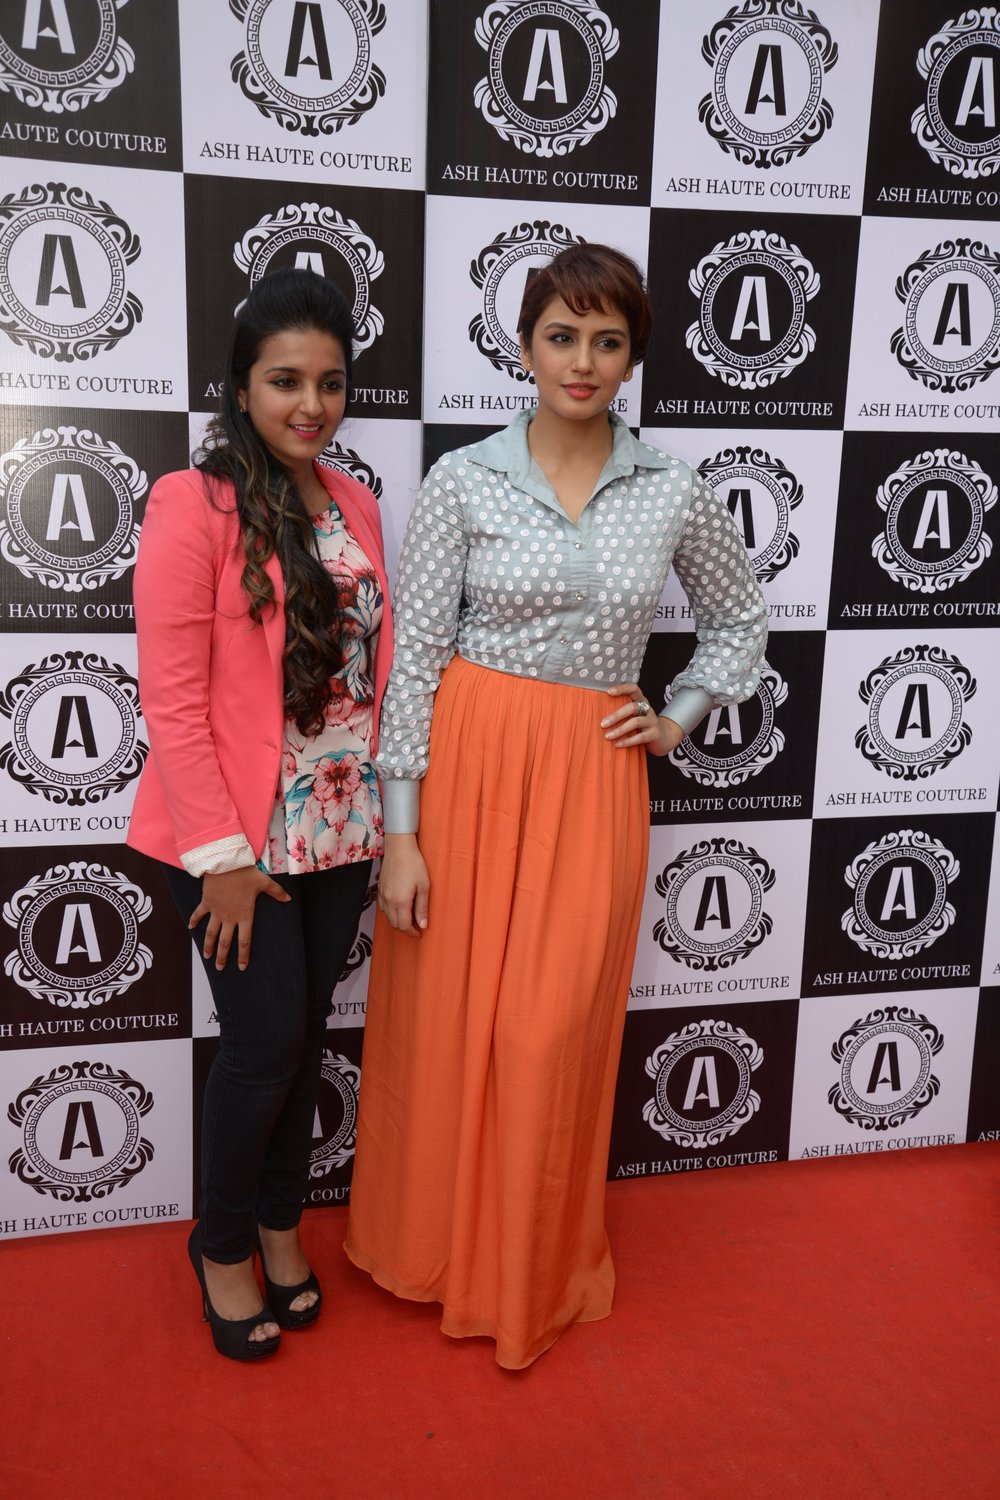 Ashna Gupta kalra with Huma Quereshi